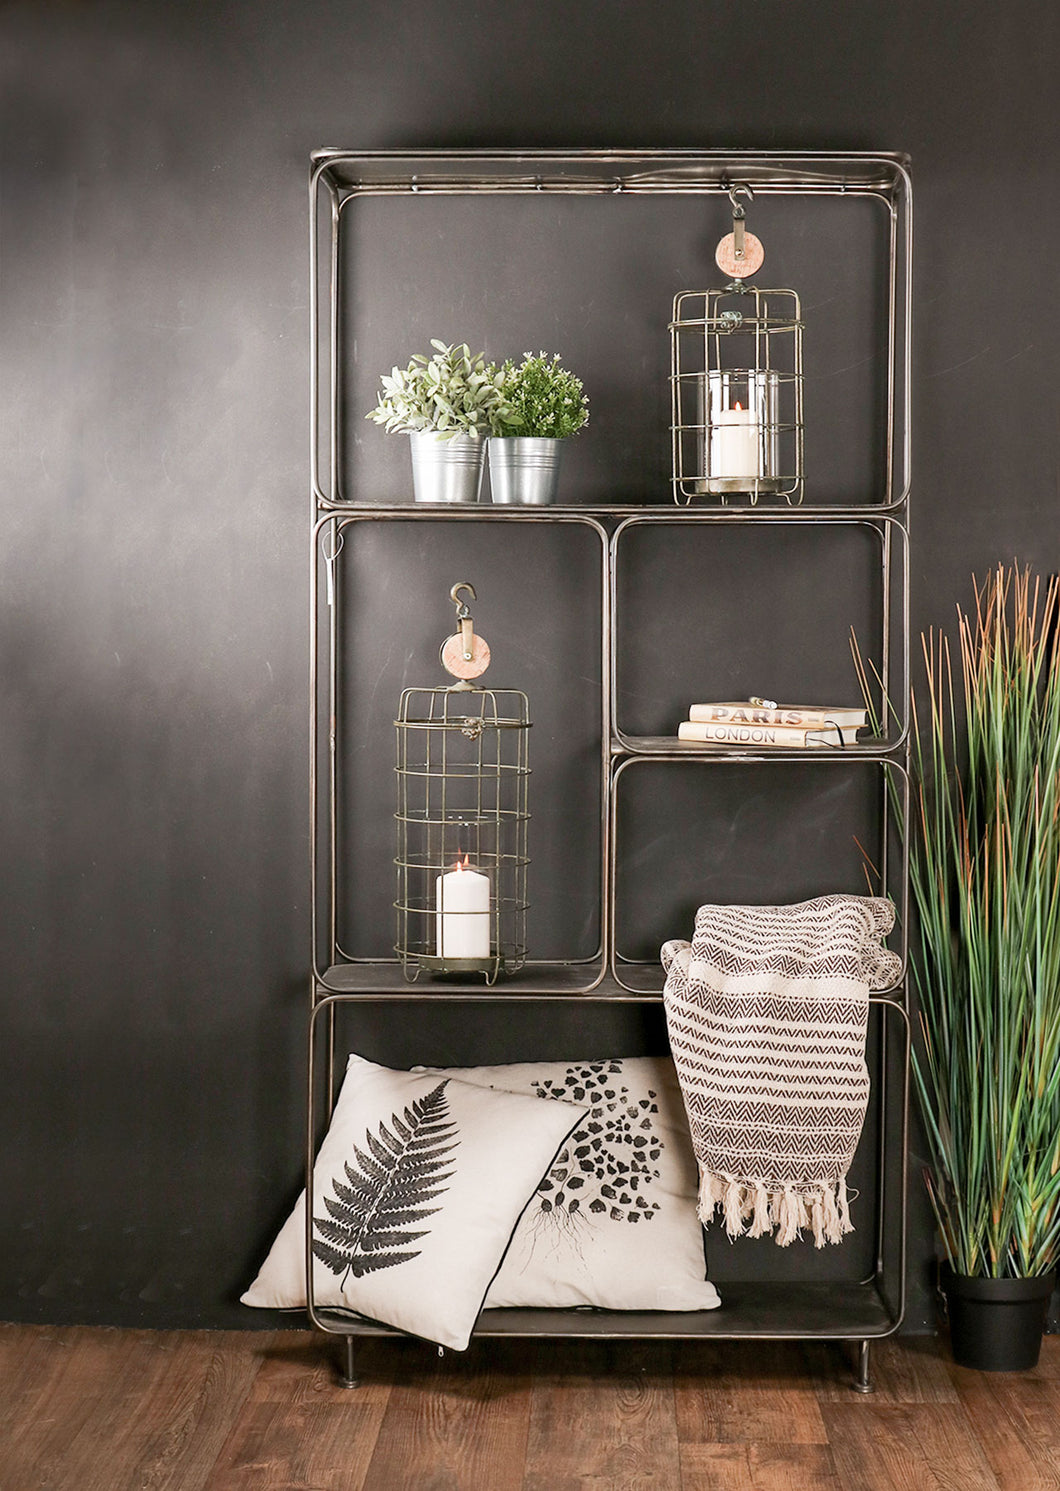 Large Industrial Style Shelving Unit Living Room Vintage Shelf Rack - Whaleycorn